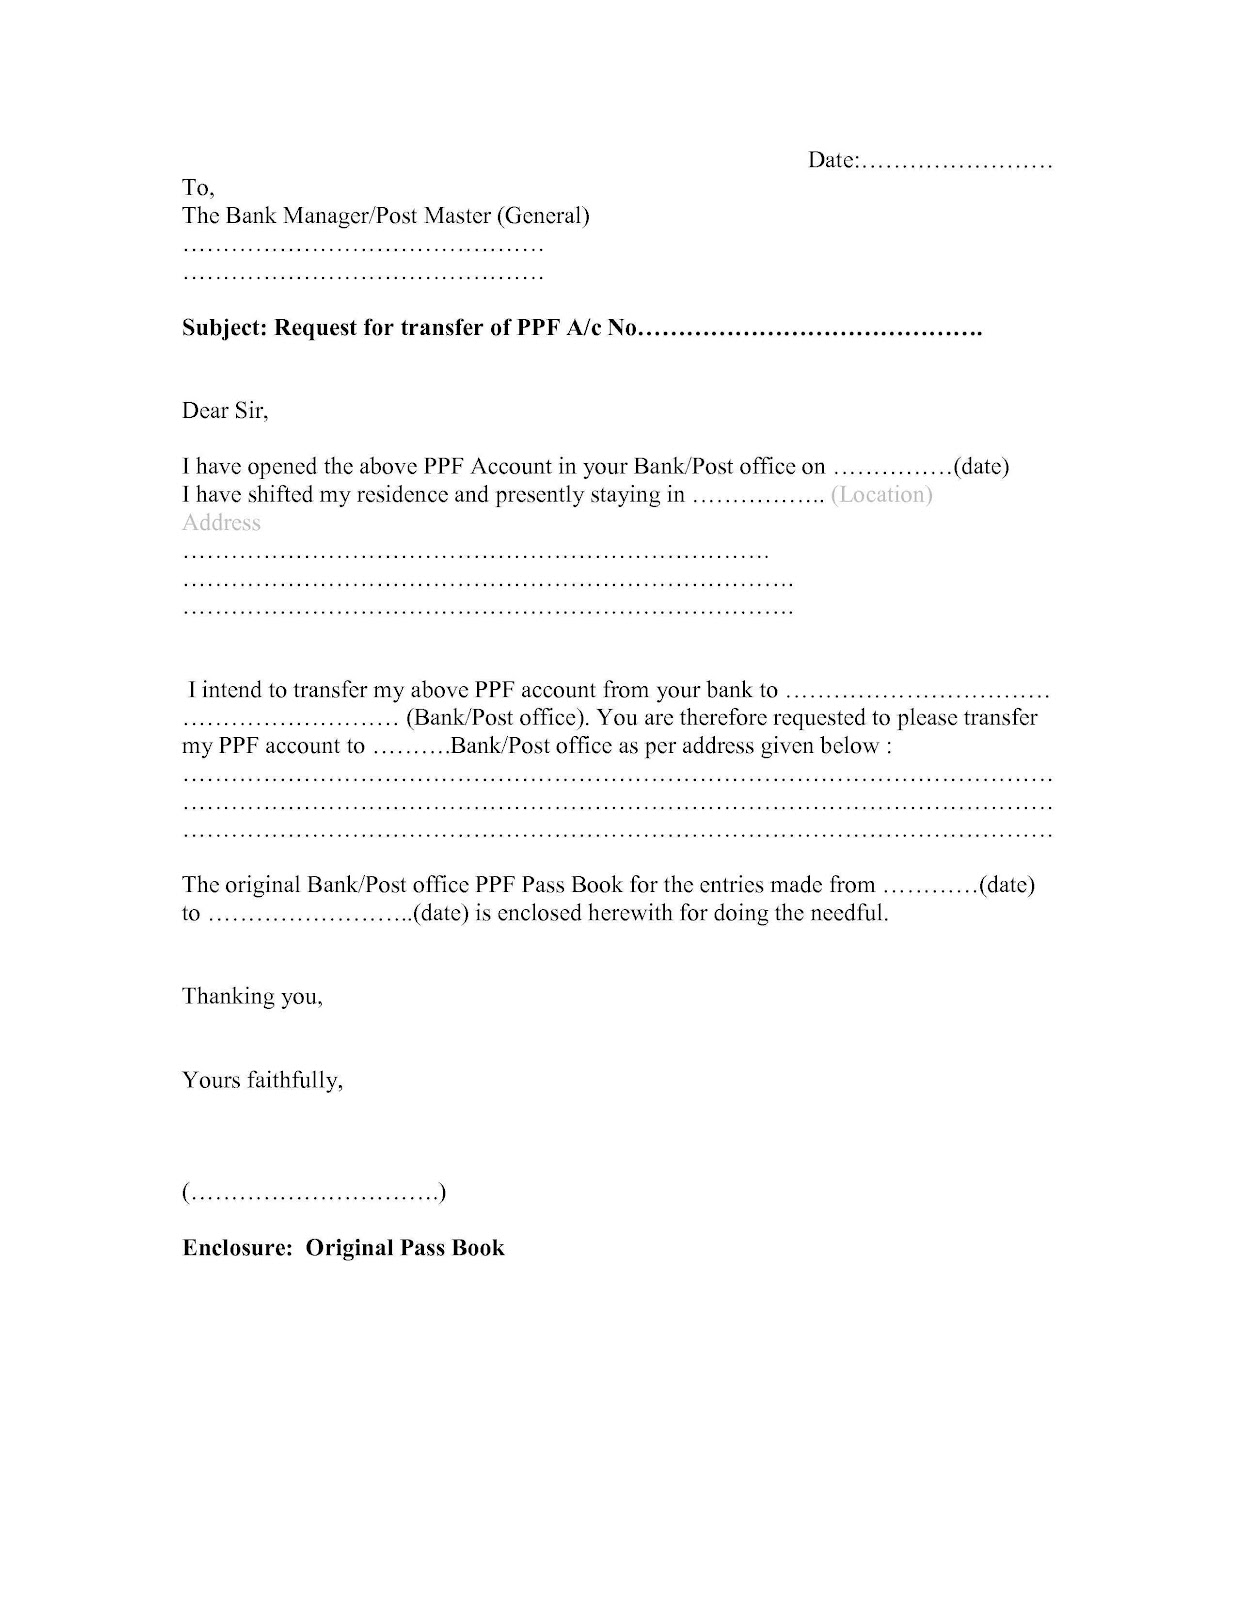 Application letter for reopen bank account spiritdancerdesigns Choice Image